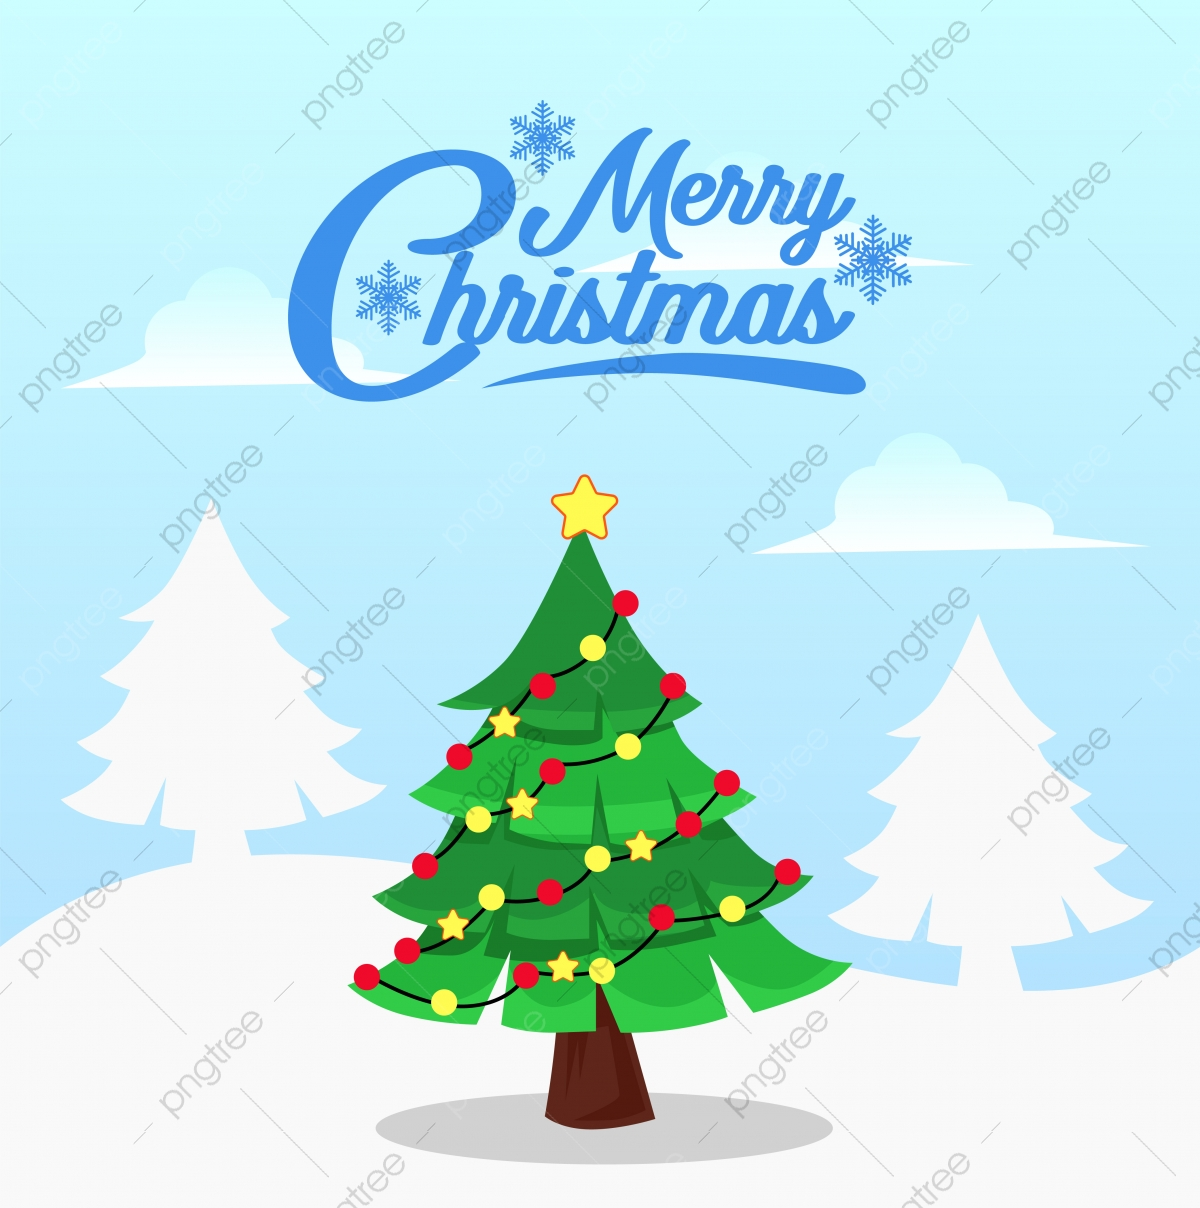 Christmas Fir Tree Decoration Flat Cartoon Style With Snow View Holiday Christmas Realistic Png And Vector With Transparent Background For Free Download Christmas tree is an essential attribute of christmas and new year. https pngtree com freepng christmas fir tree decoration flat cartoon style with snow view 5280582 html